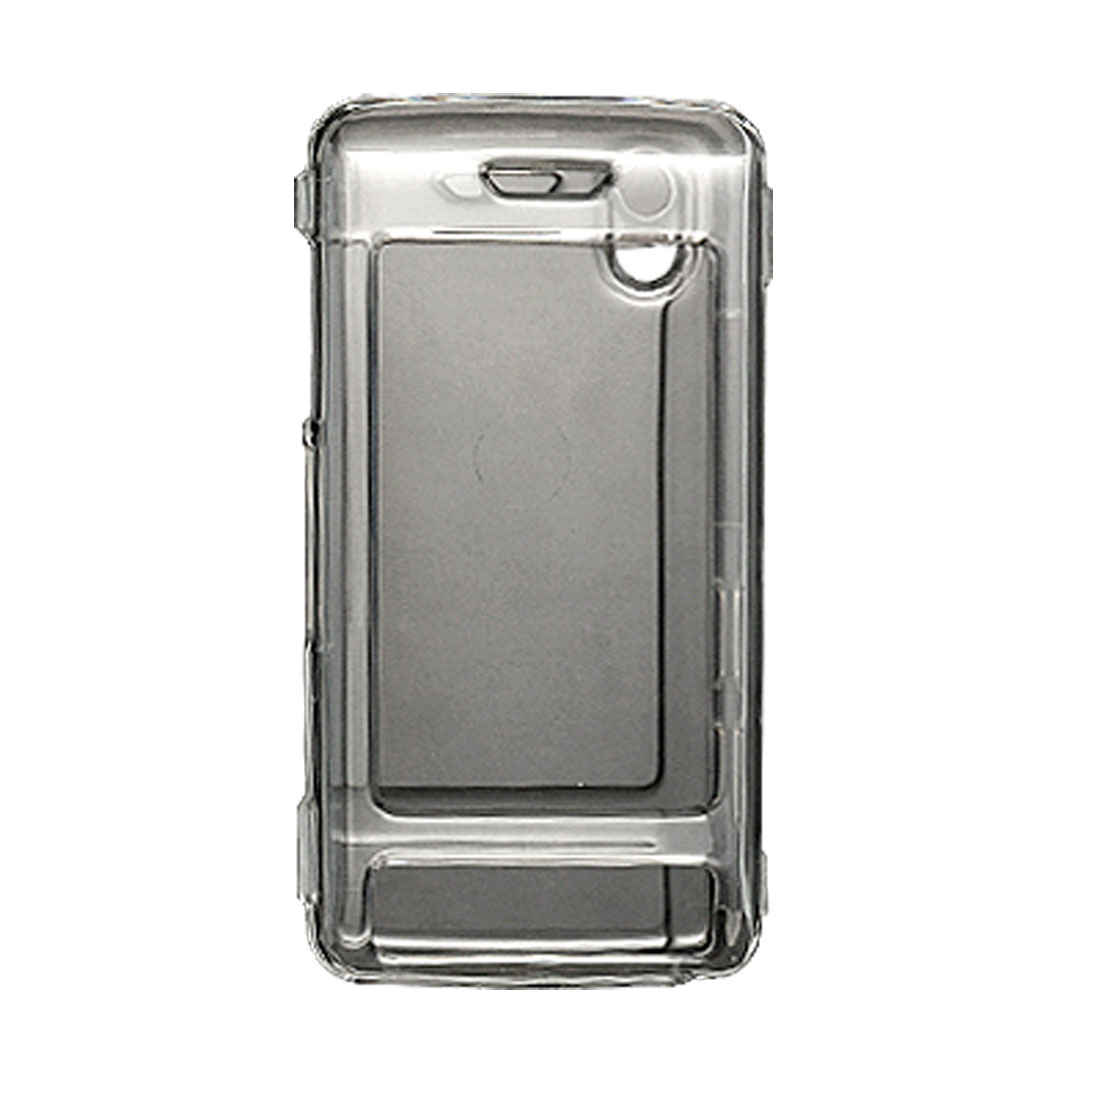 Hard Plastic Protective Case Cover Clear for LG KP500 Mobile